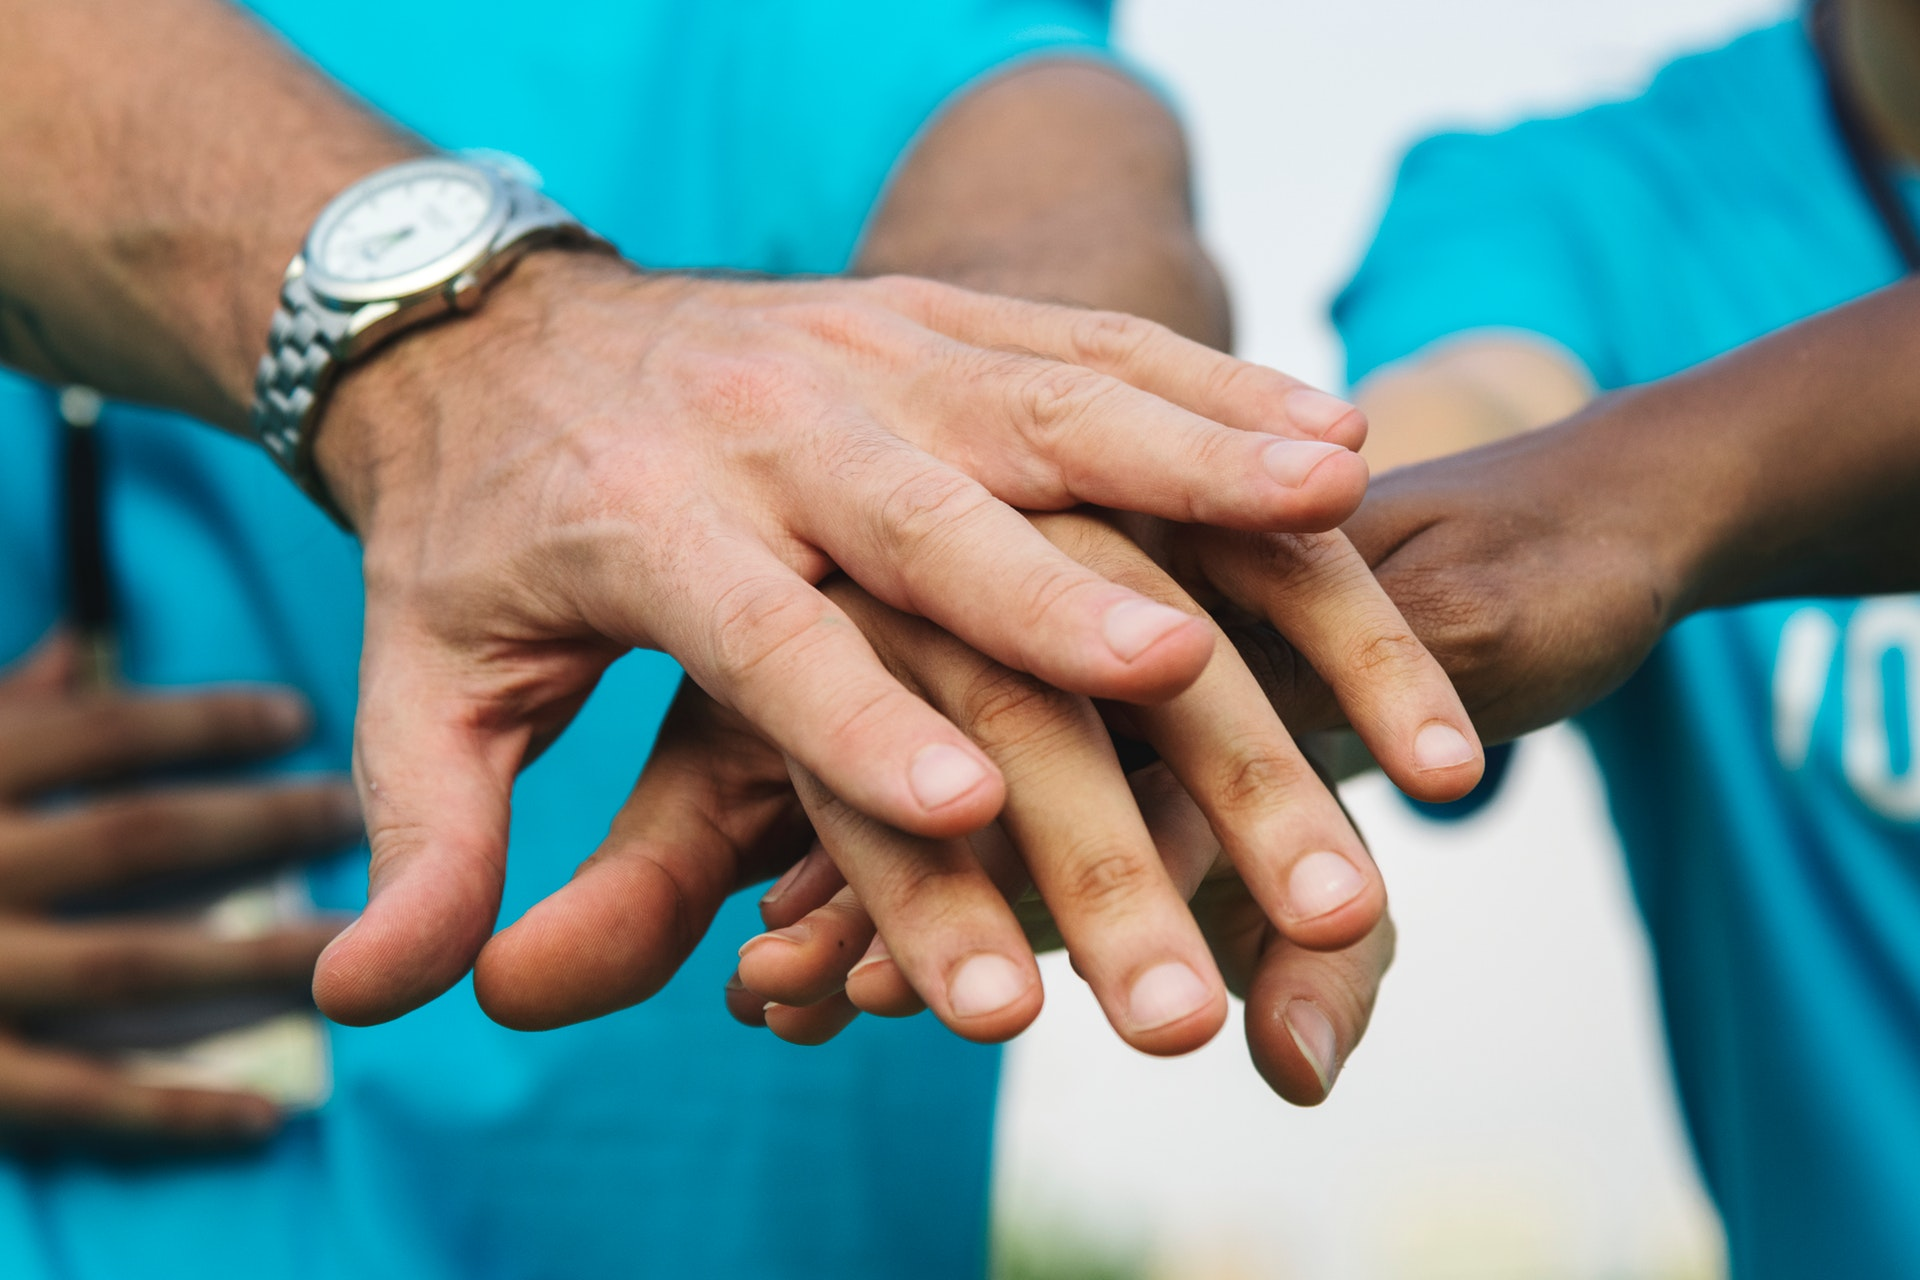 Hands showing collaboration